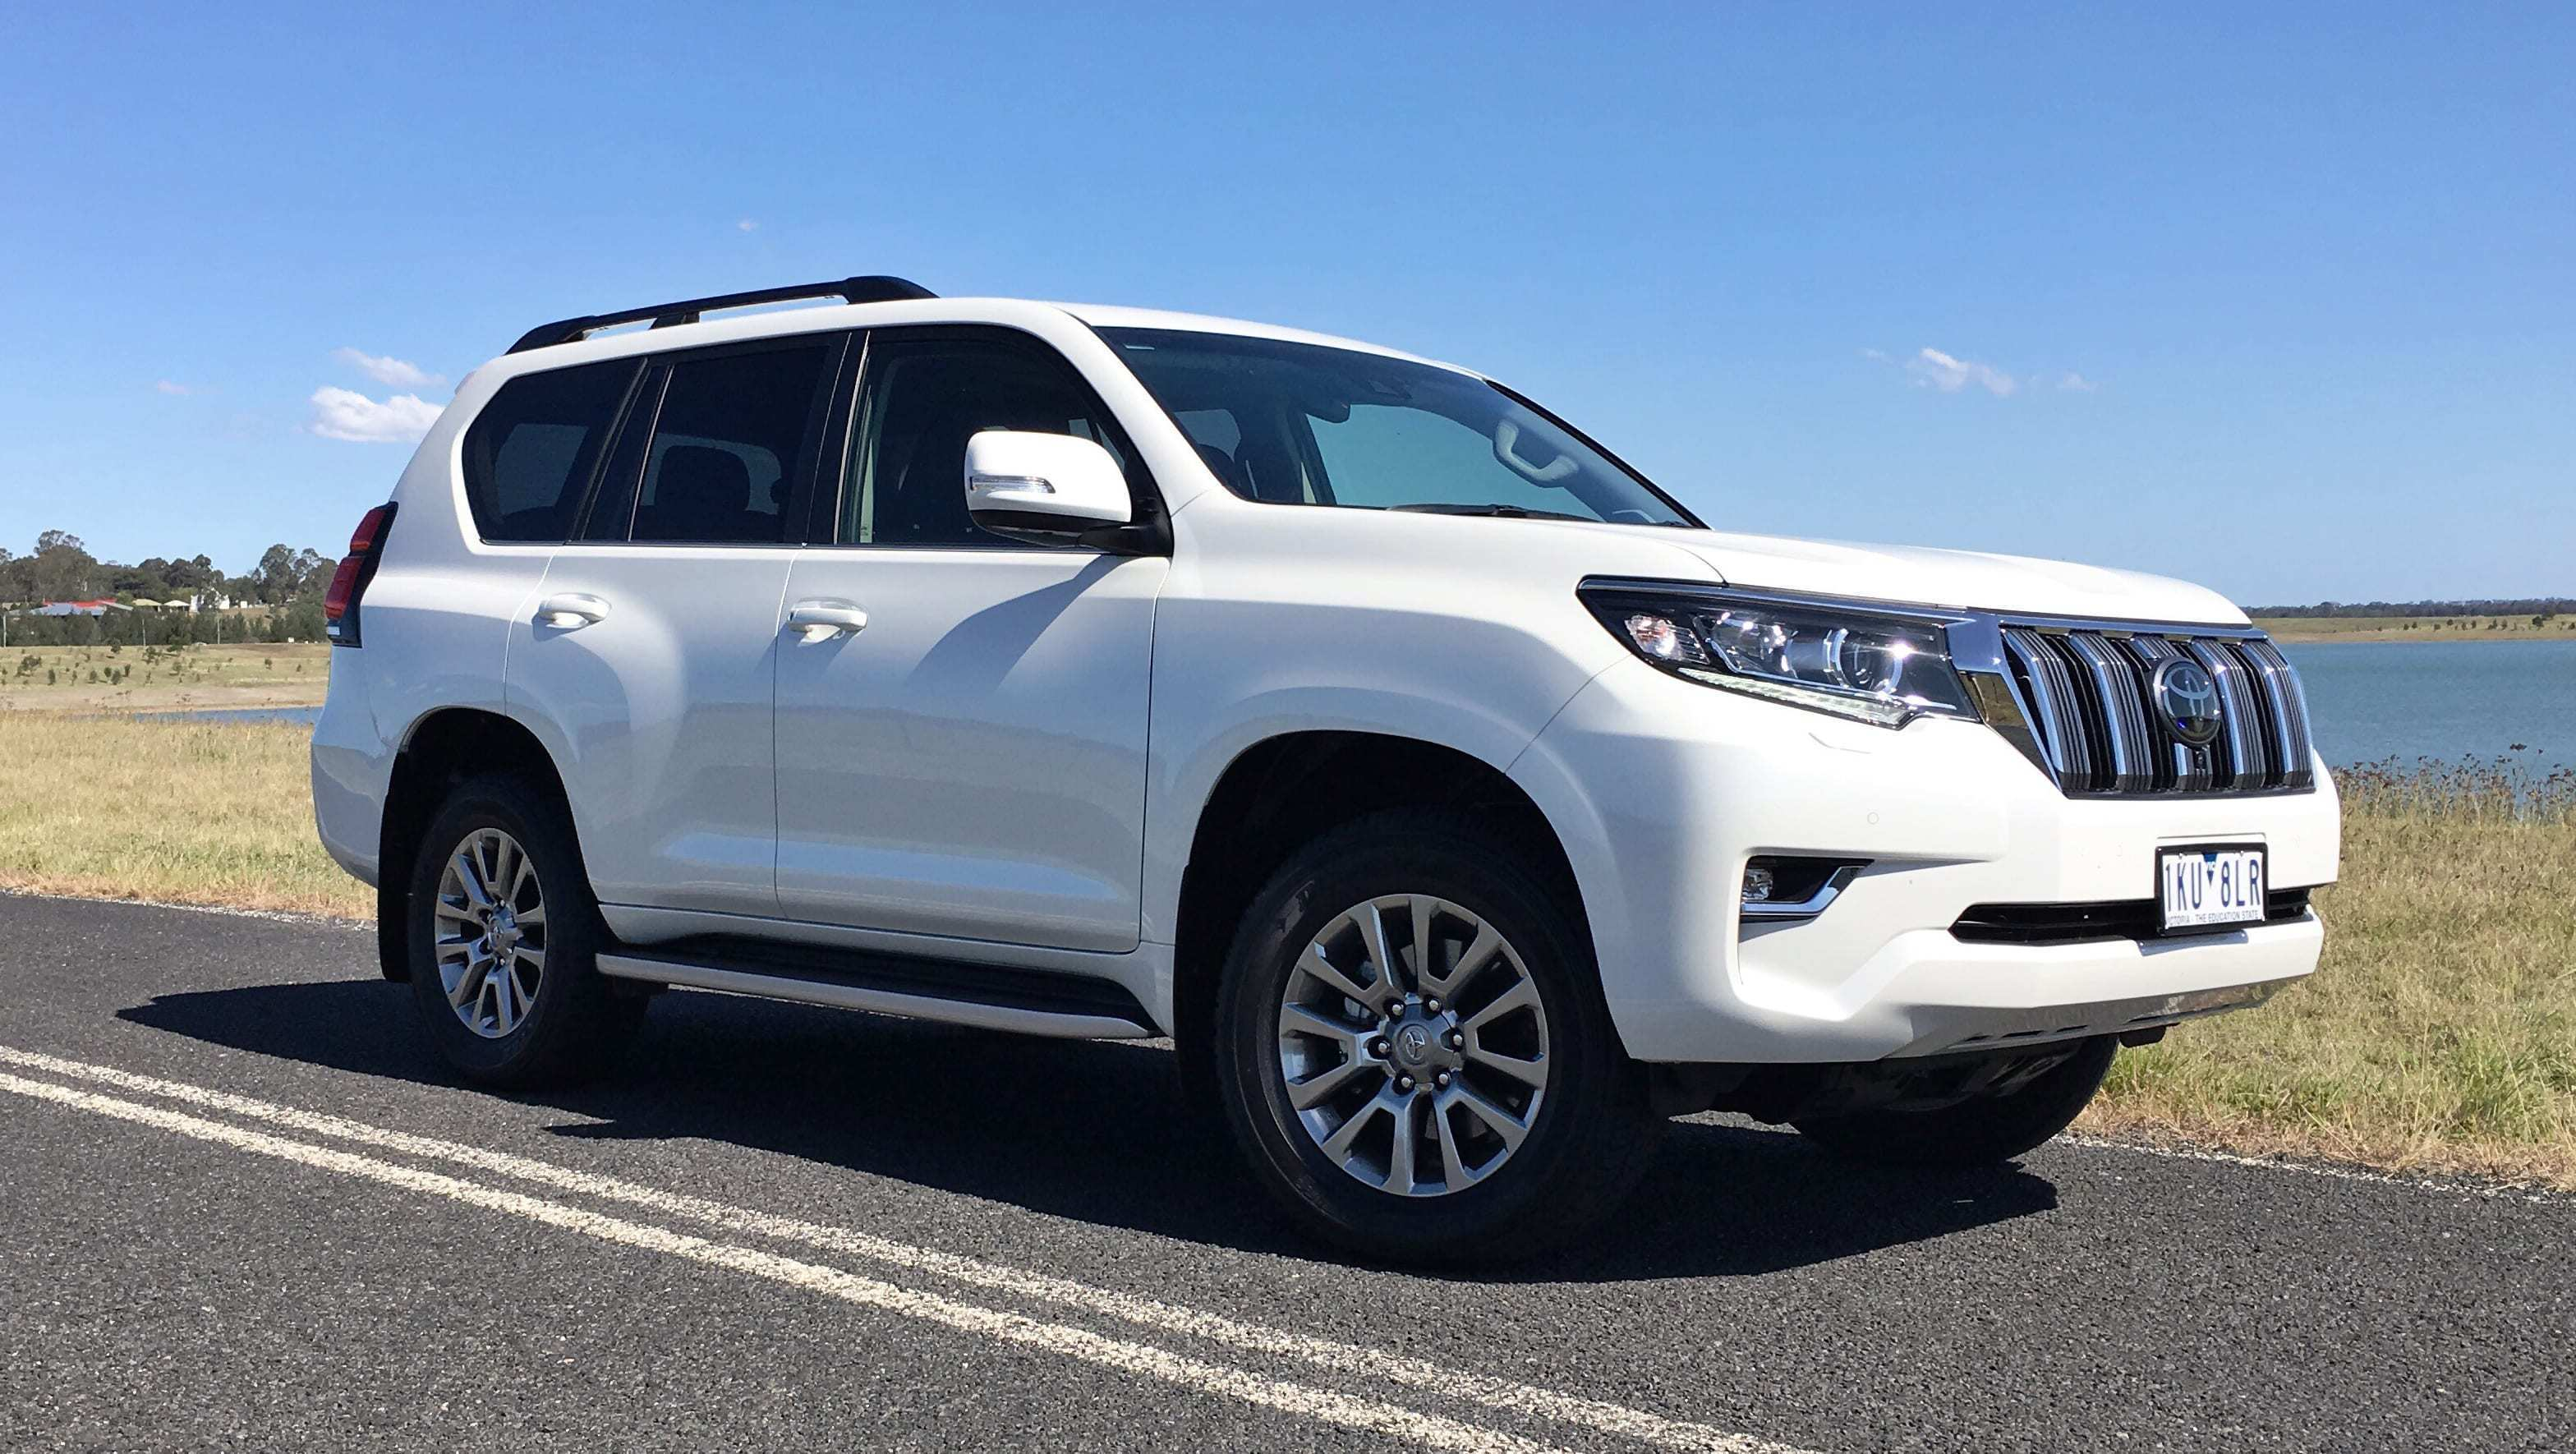 76 The Best Toyota Prado 2019 Australia Images